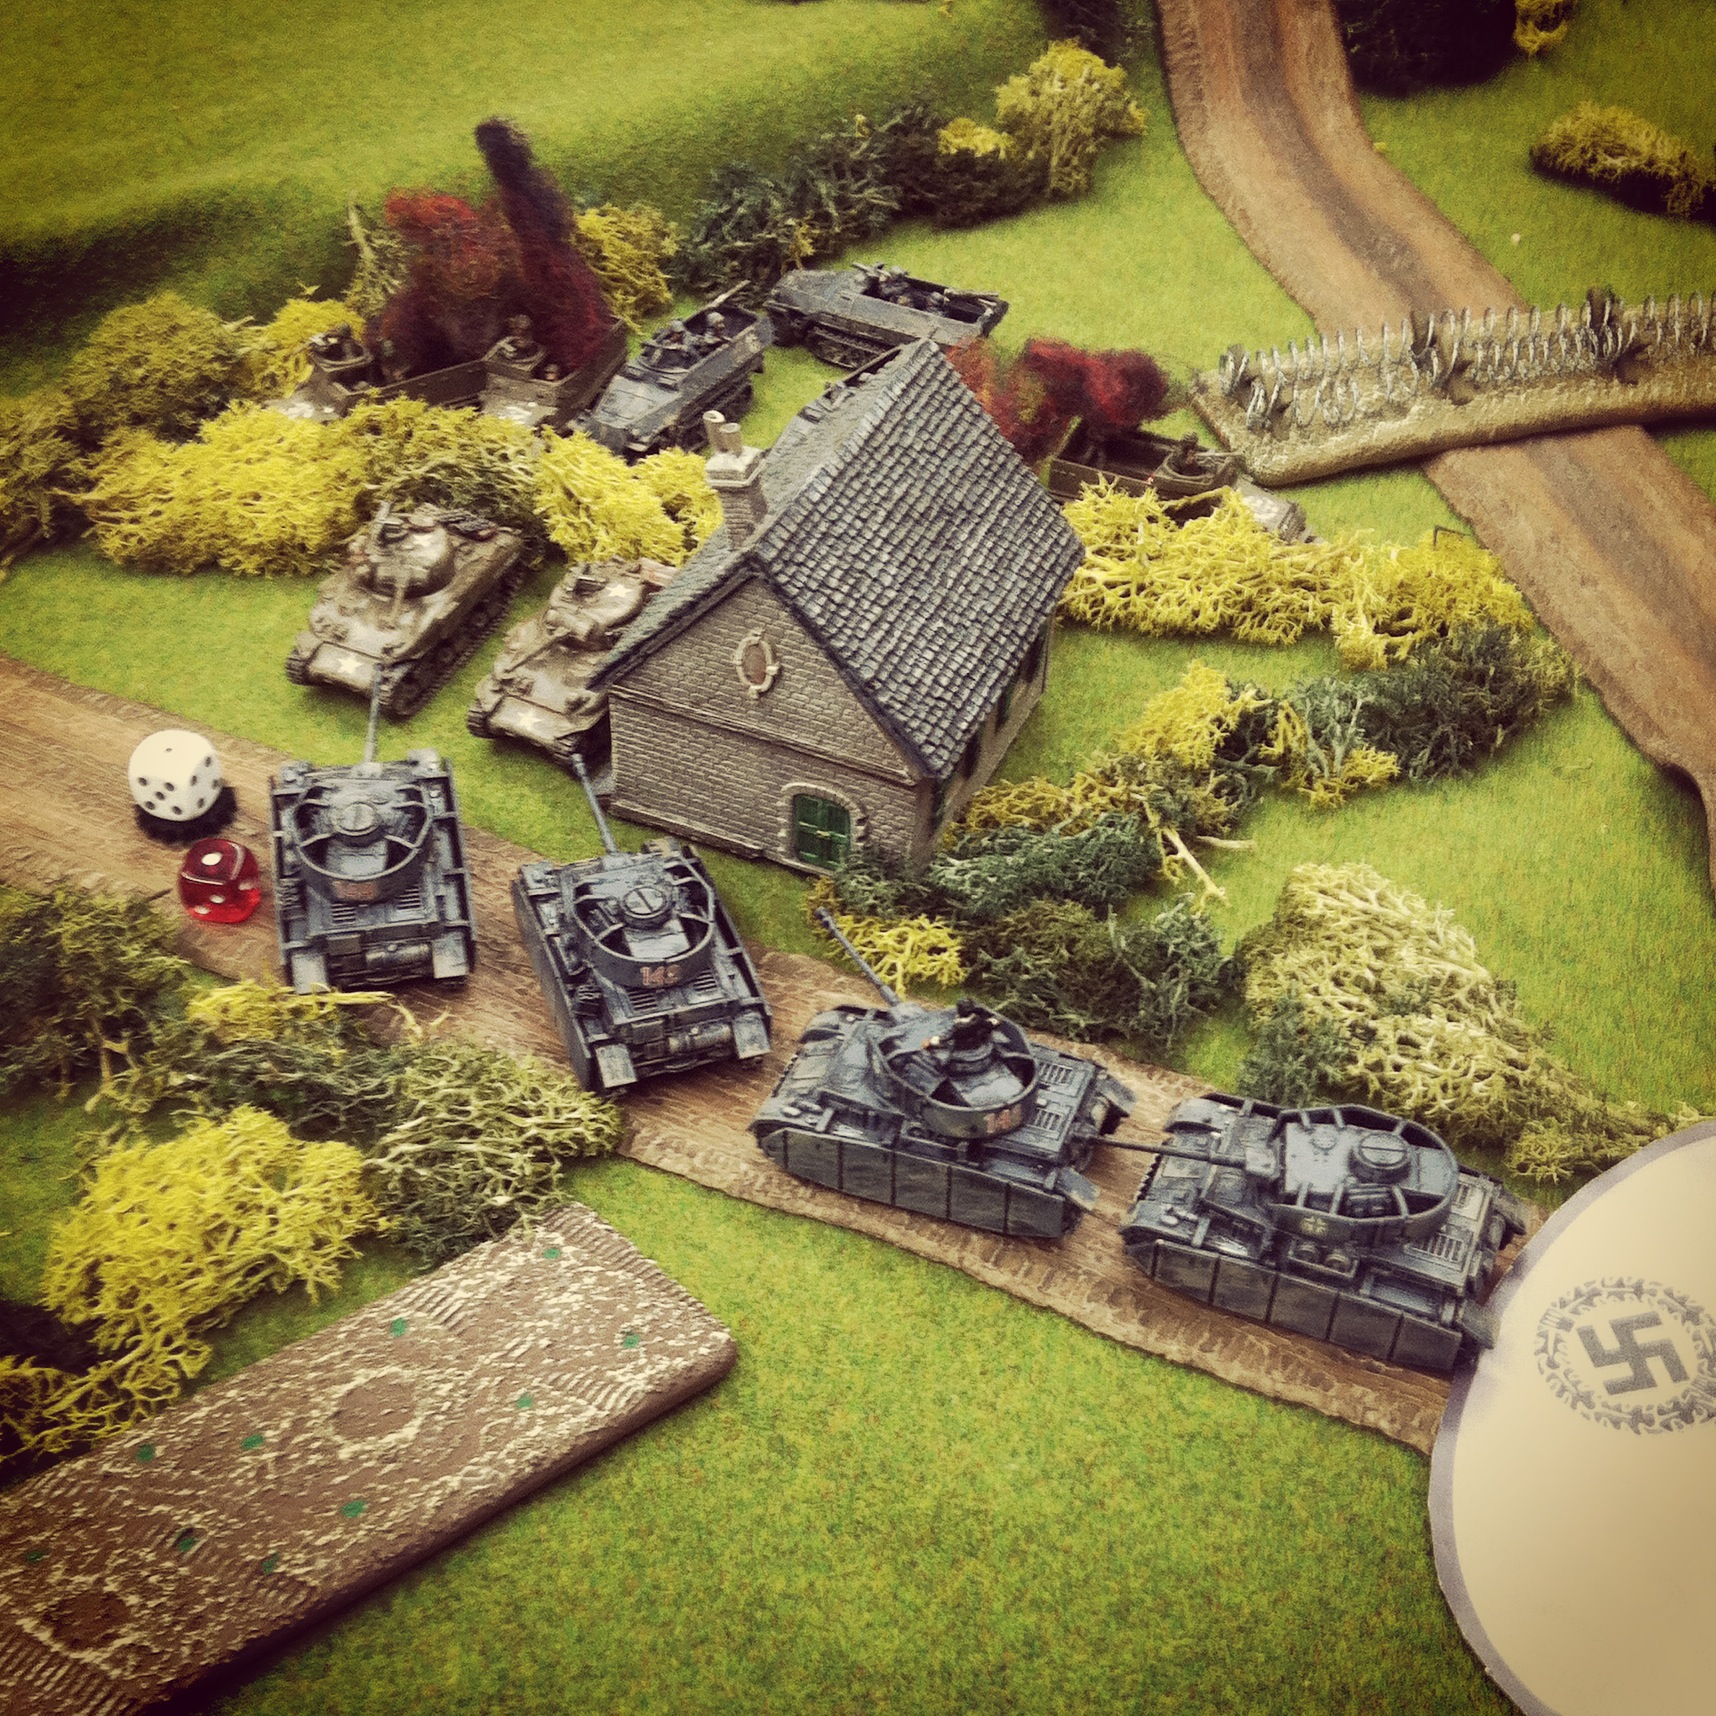 The German Panzer IV column exposes two Shermans behind a farmhouse